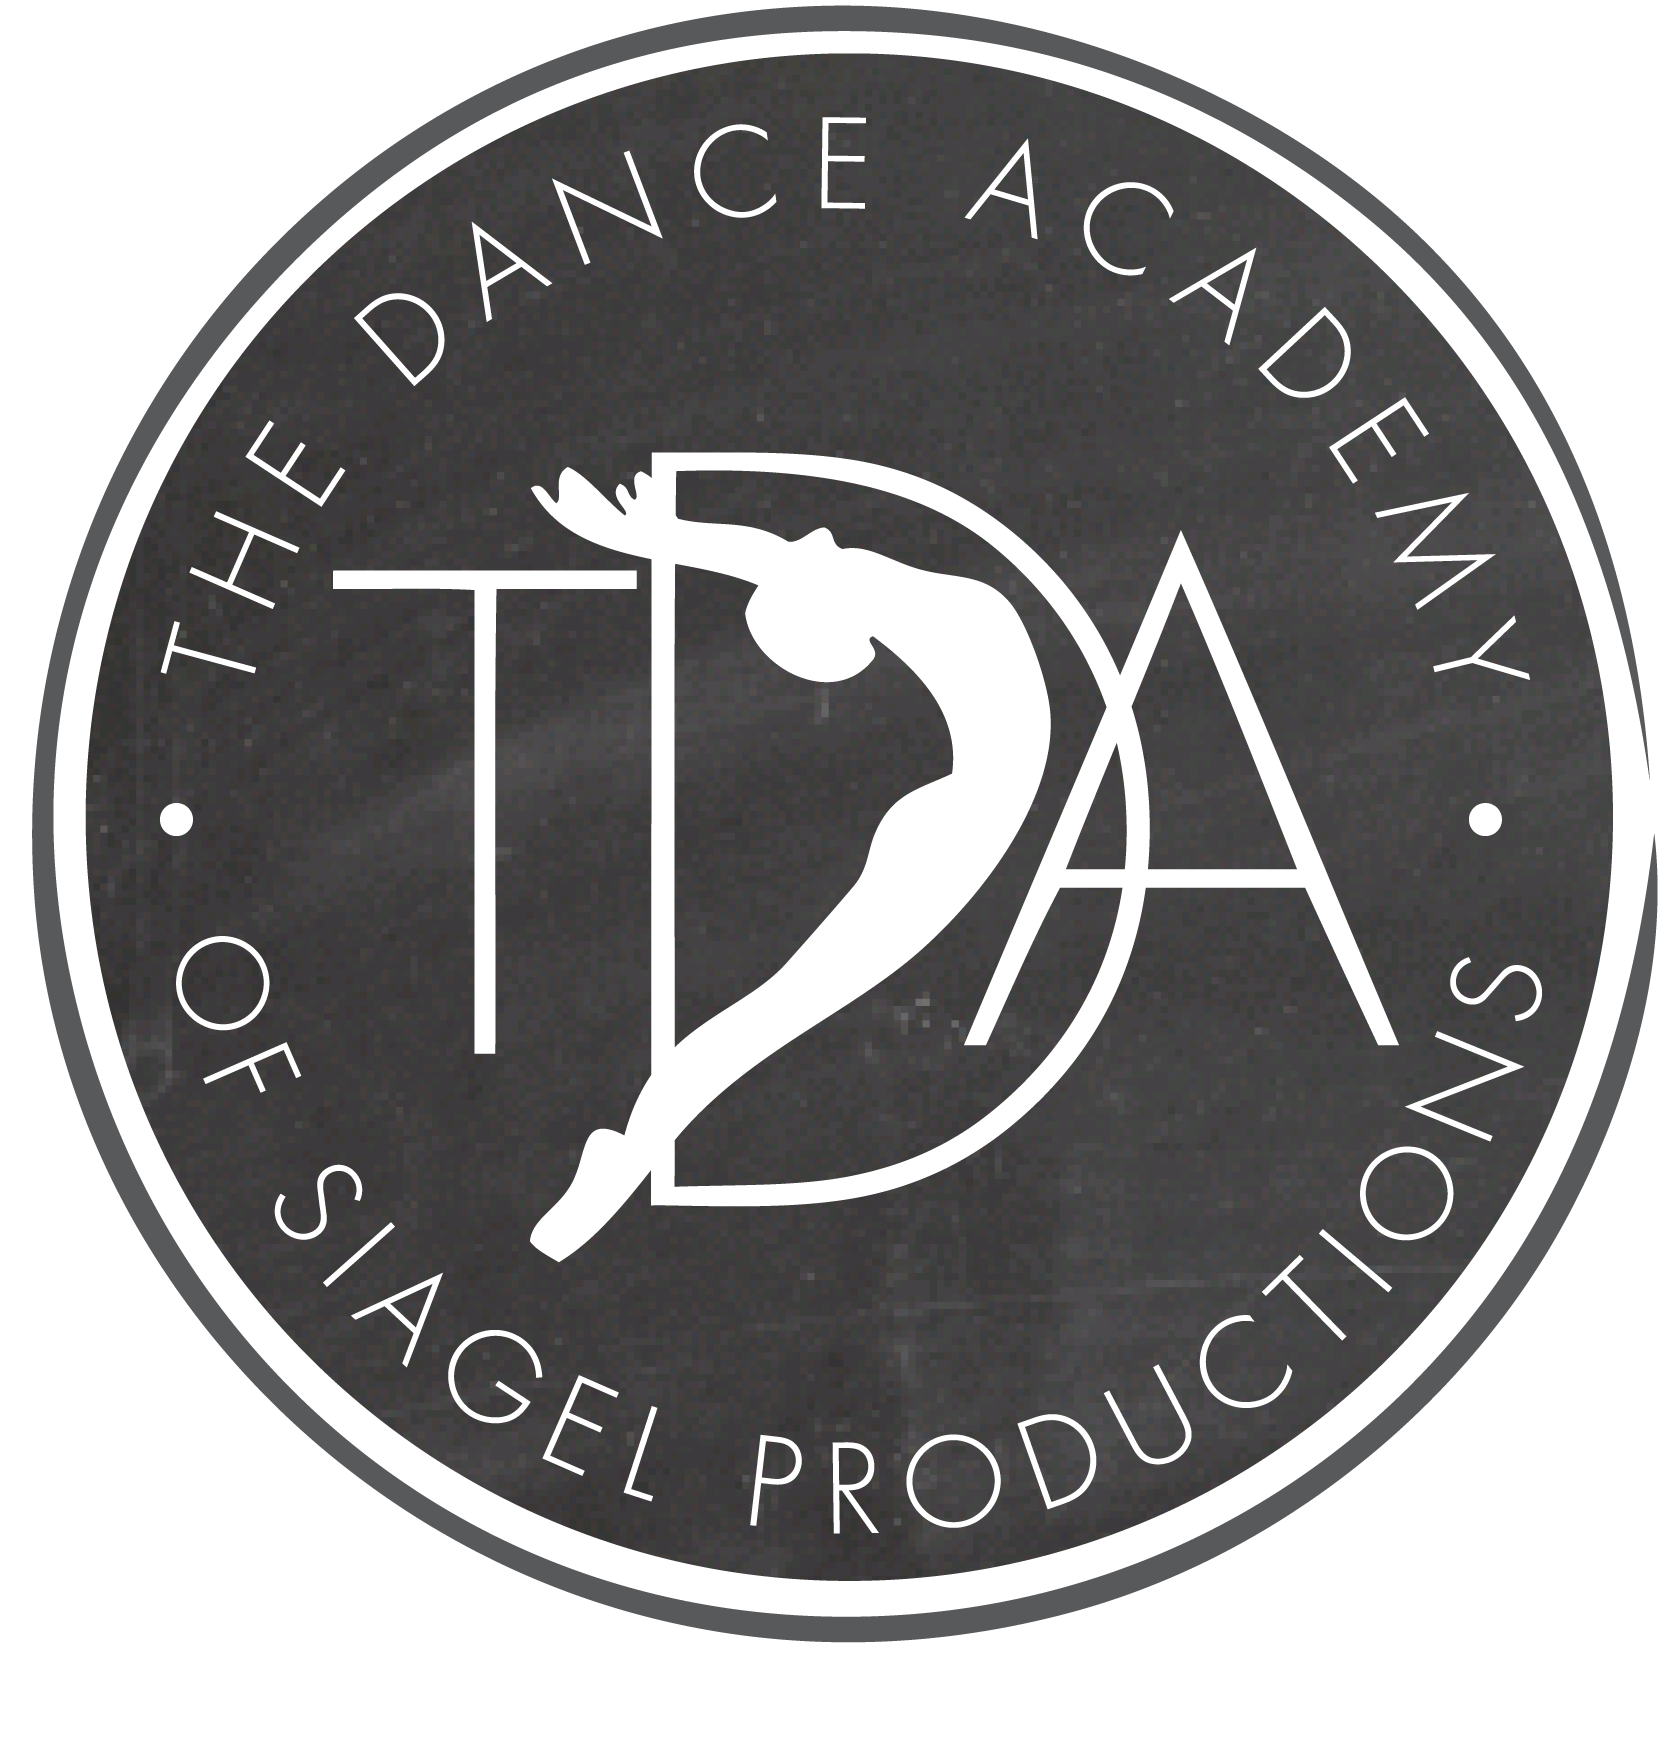 The Dance Academy of Siagel